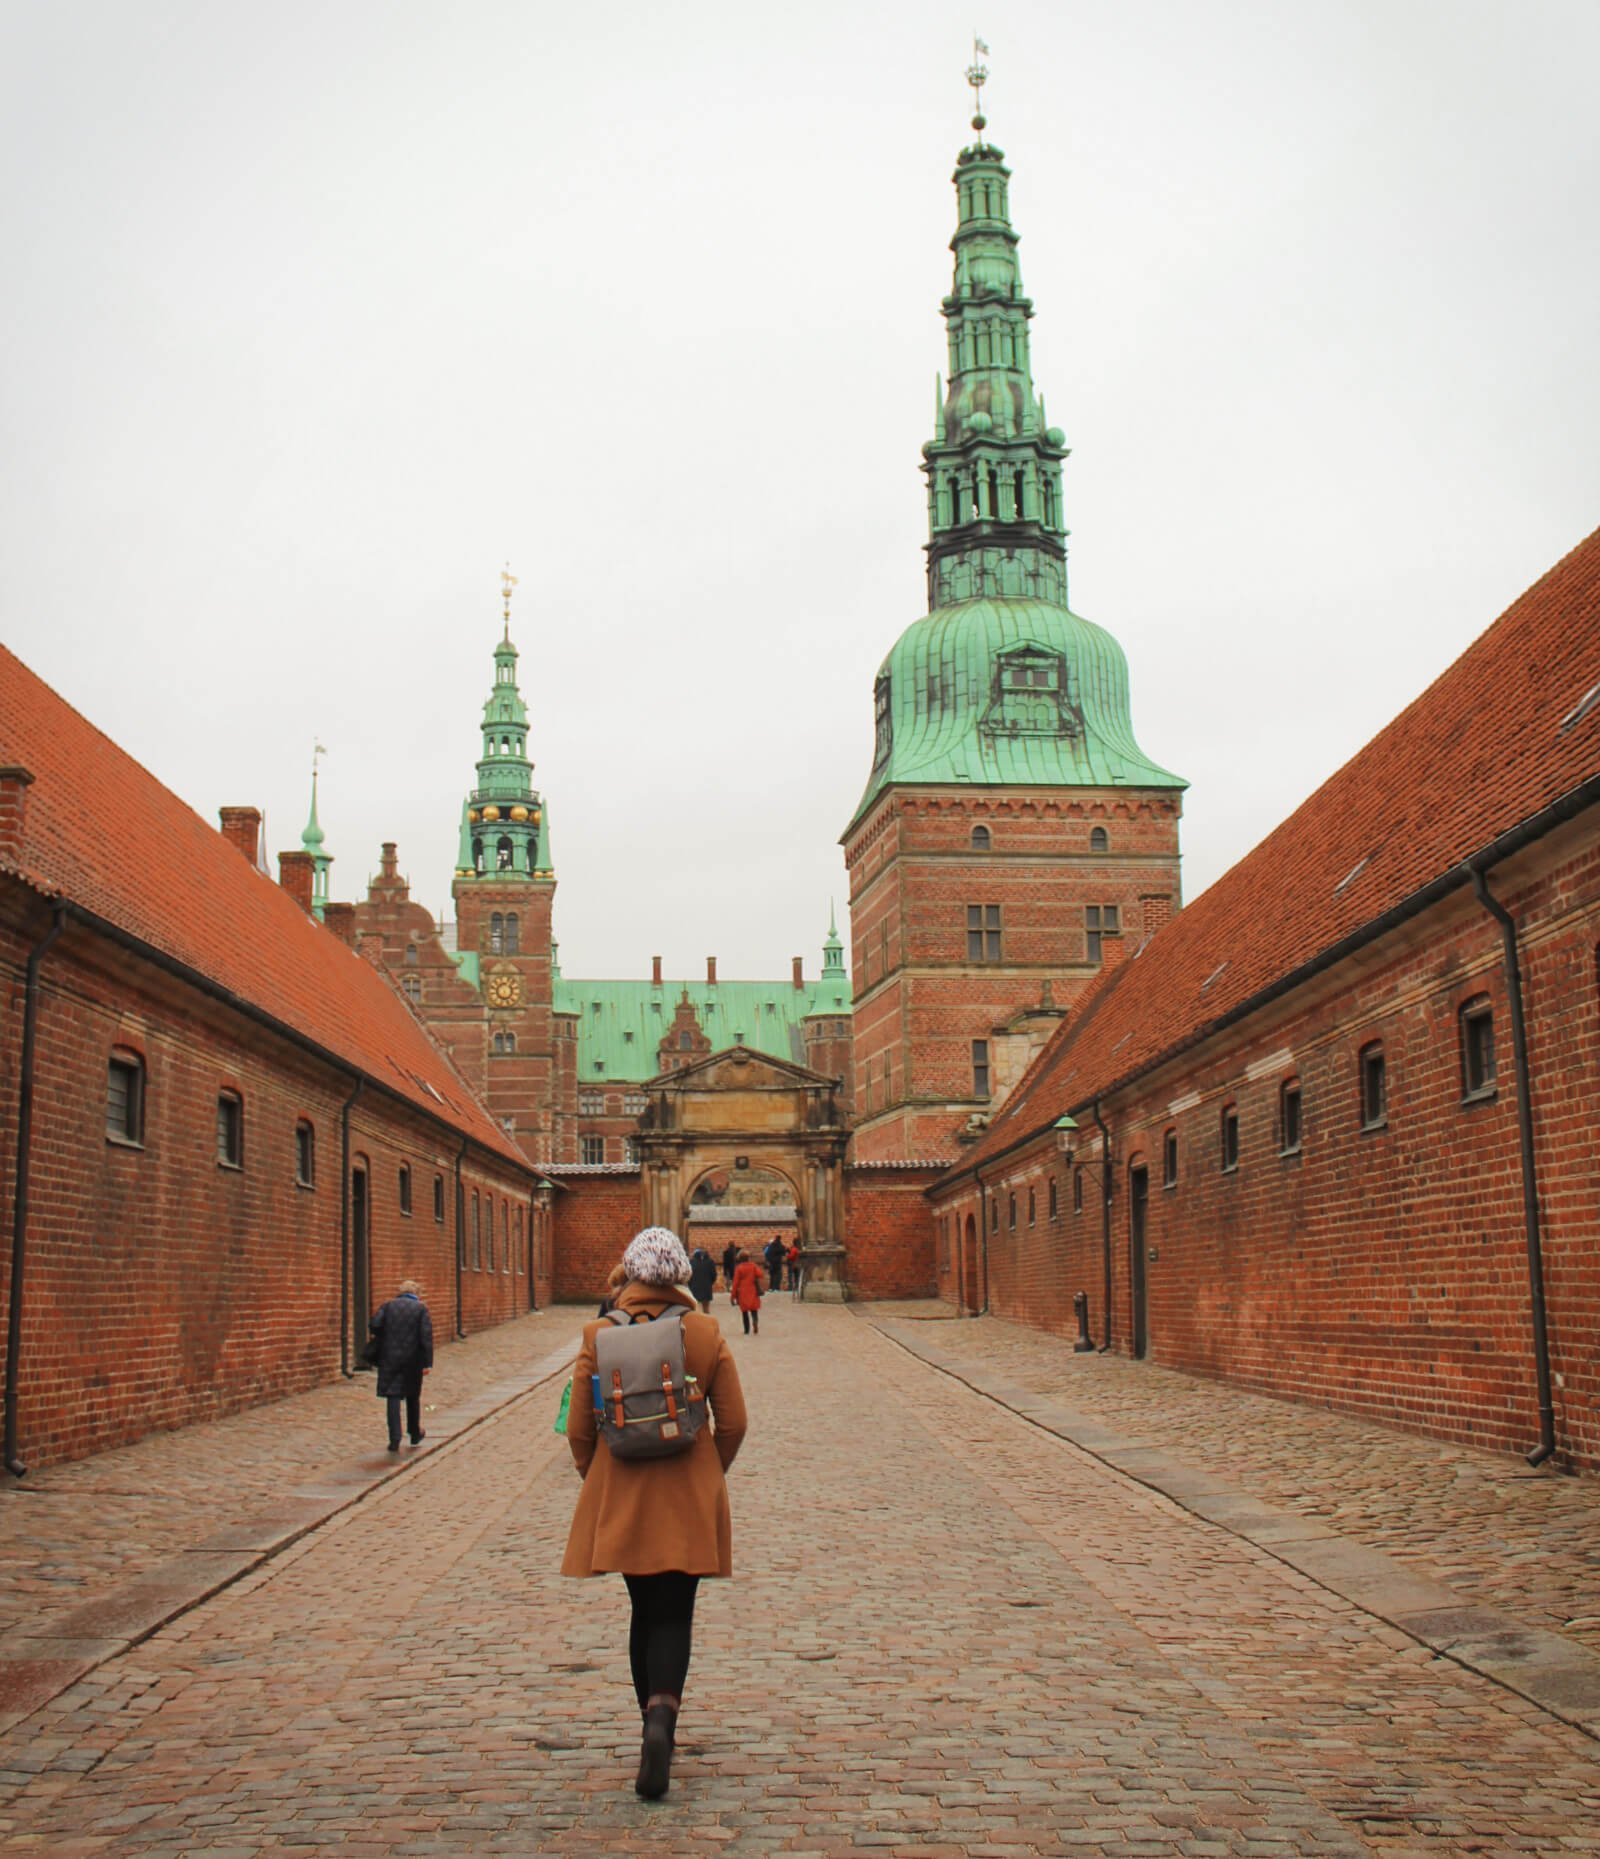 Exploring Frederiksborg Castle near Copenhagen, Denmark on a winter day.